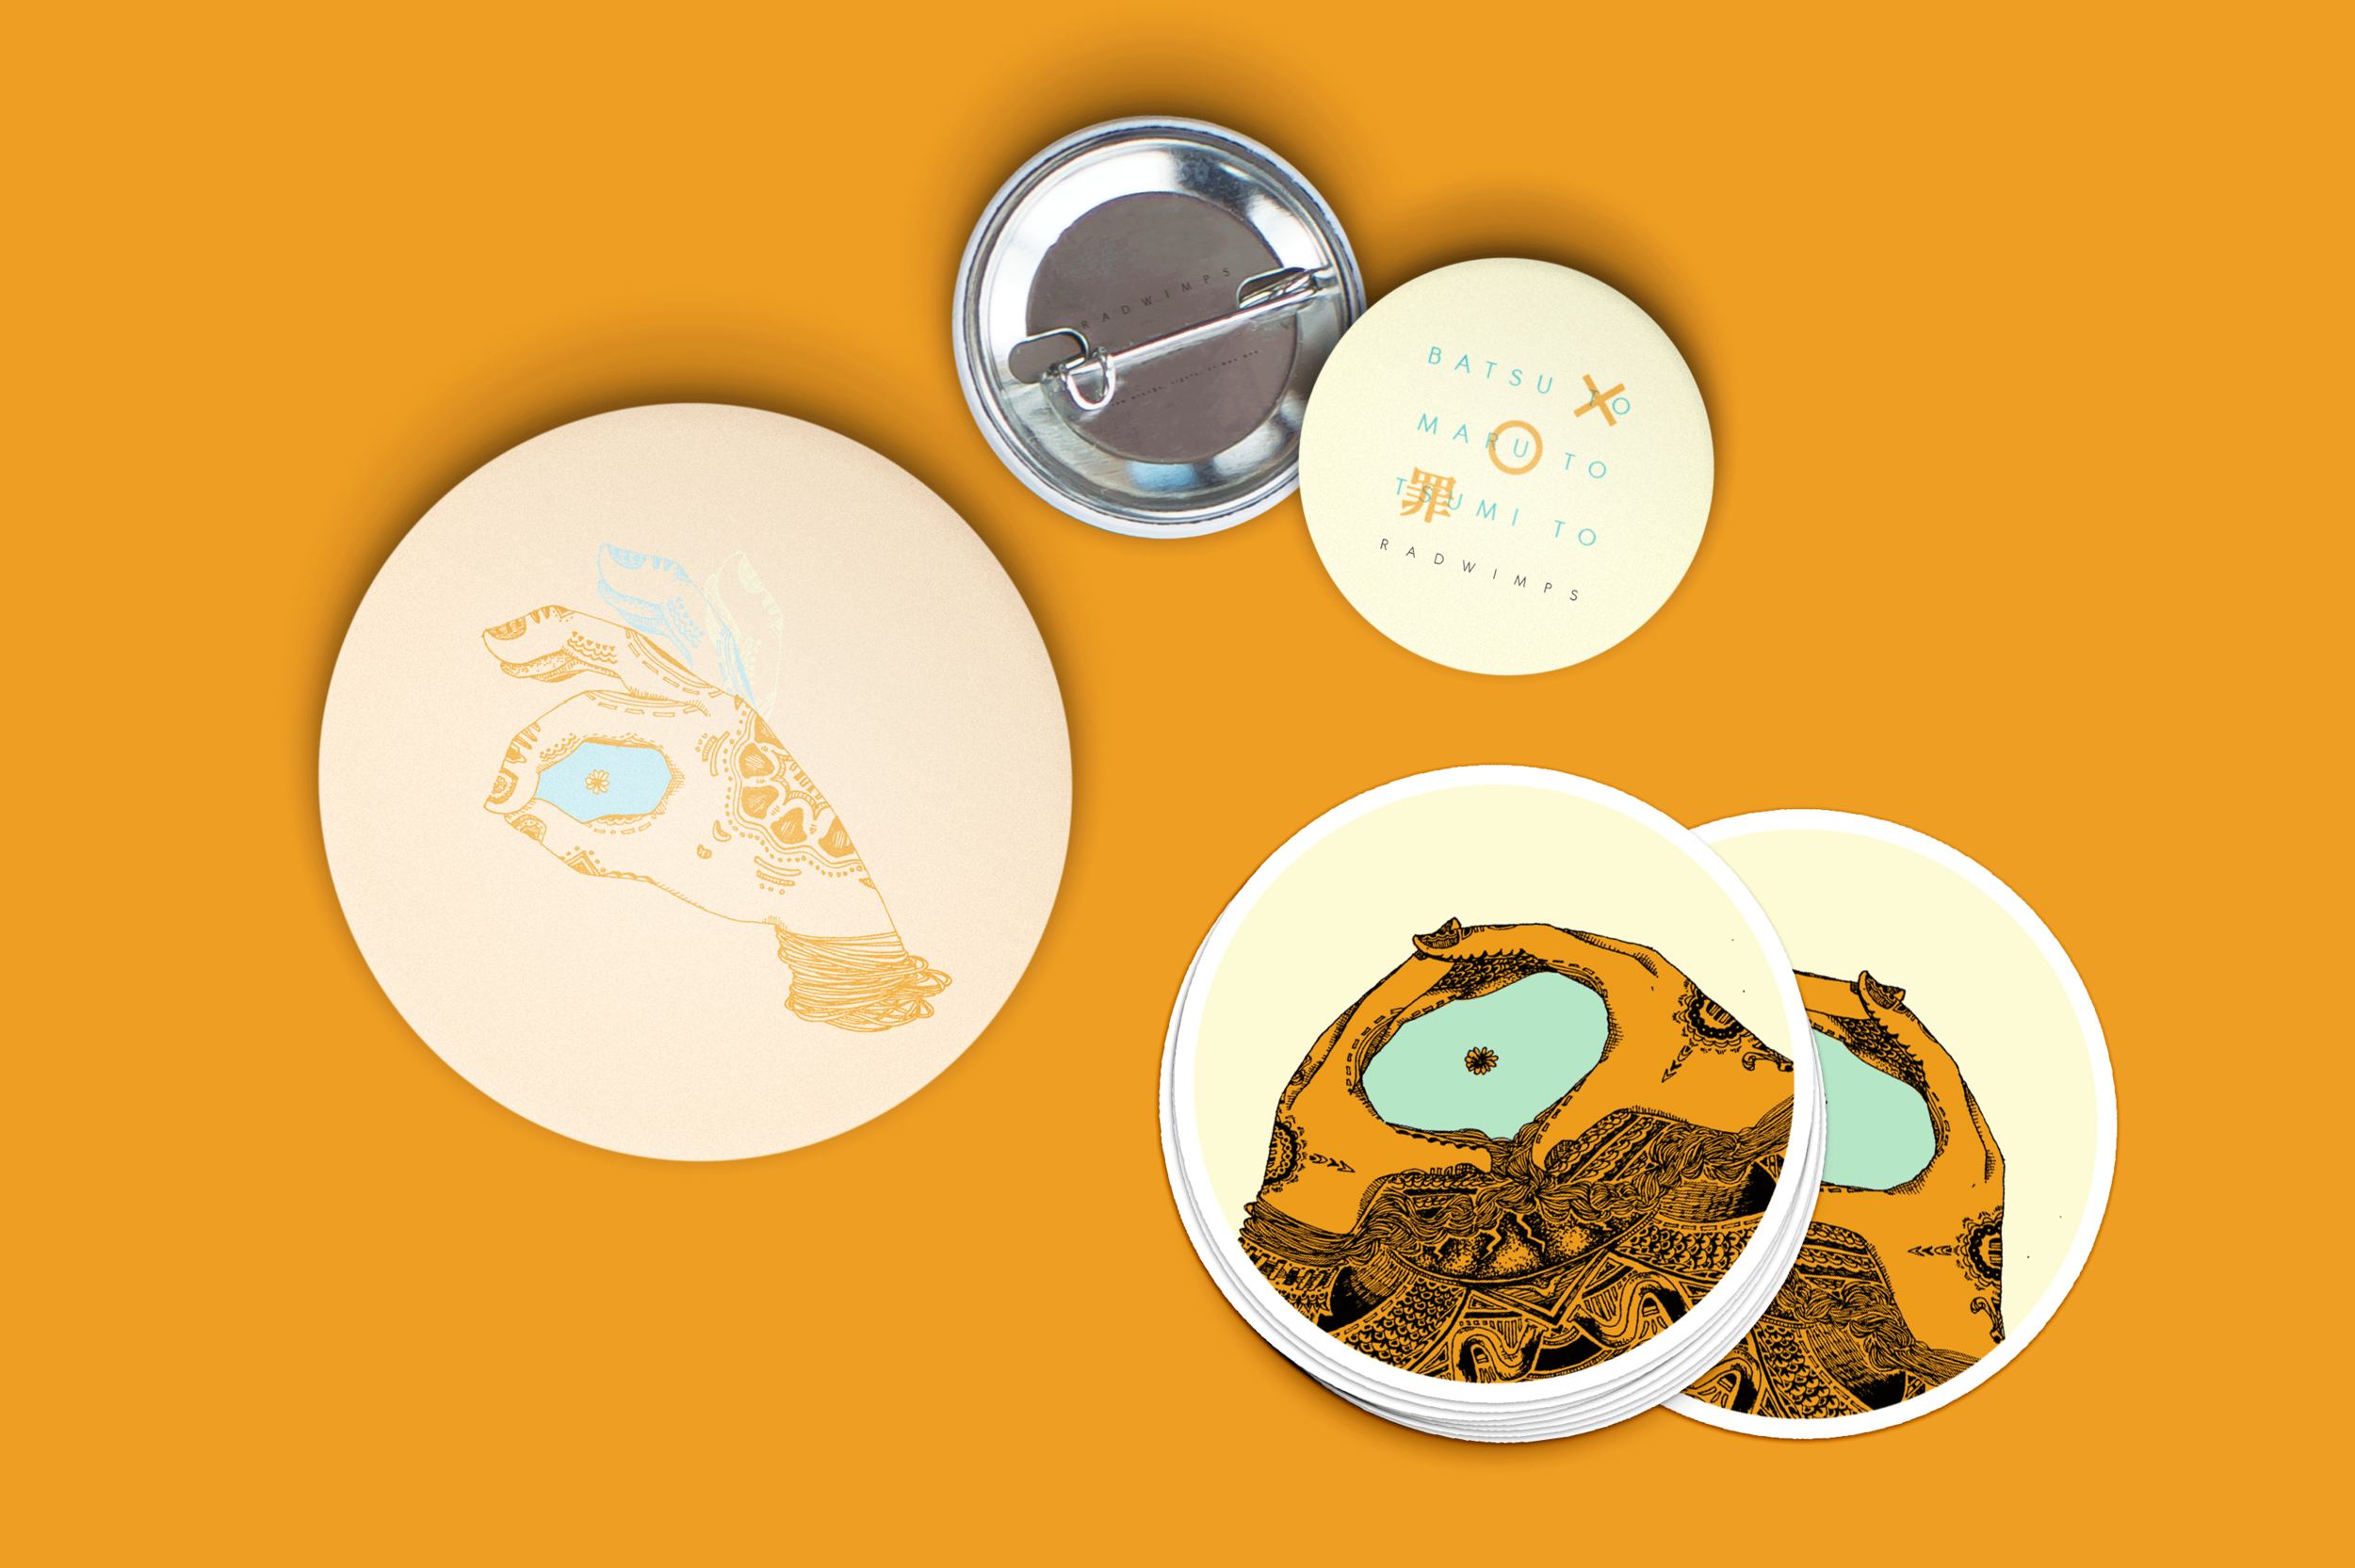 Pin badges and stickers